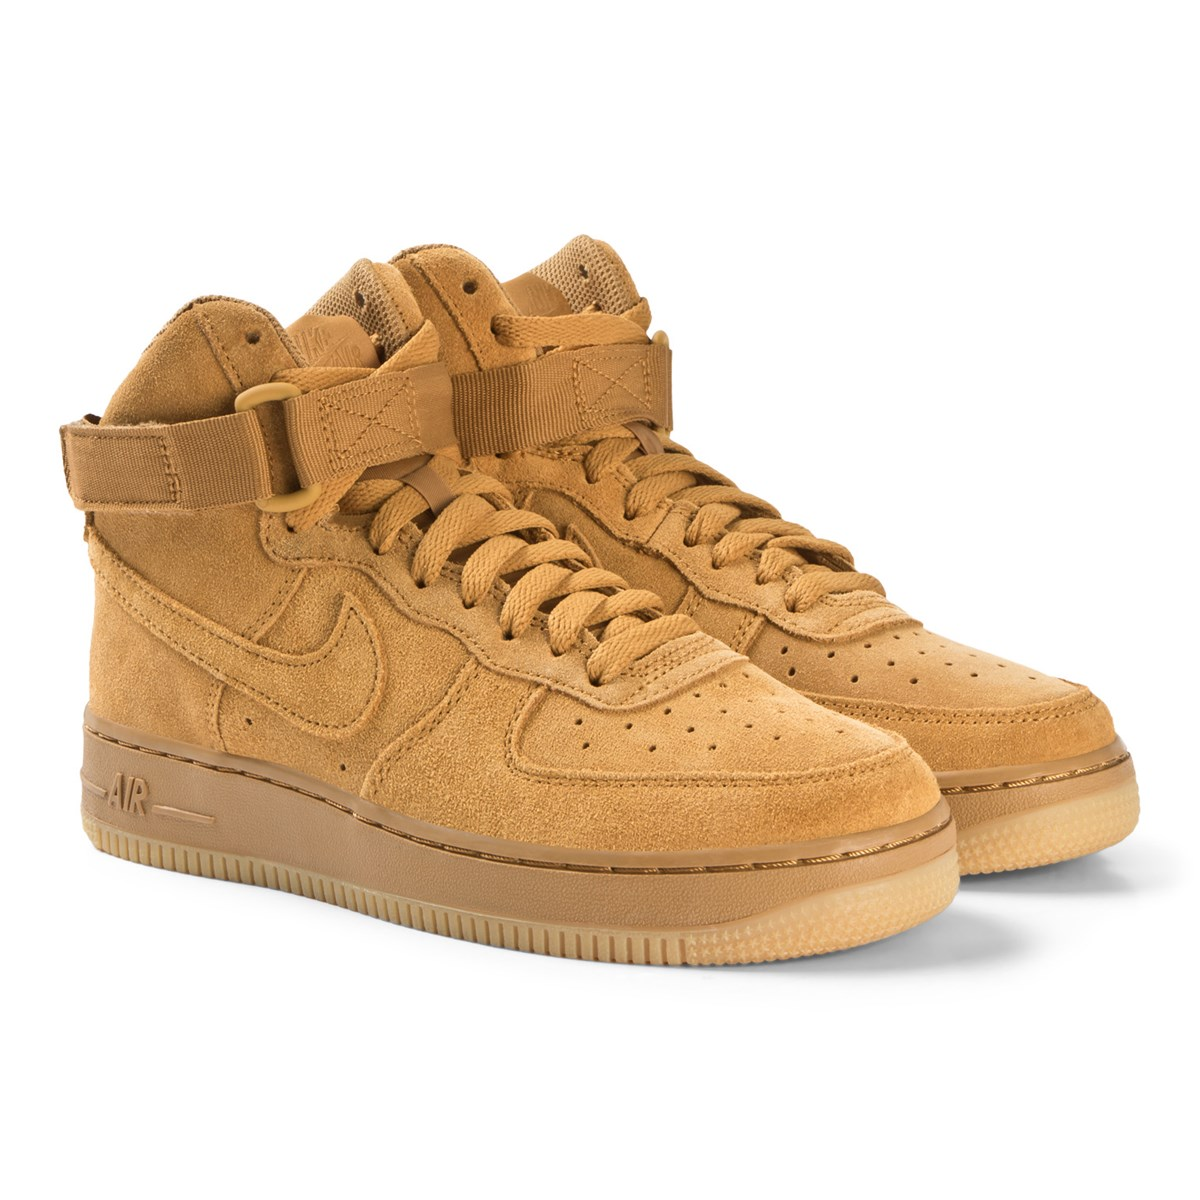 Nike Beige Nike Air Force 1 Lv8 High Top Sneakers